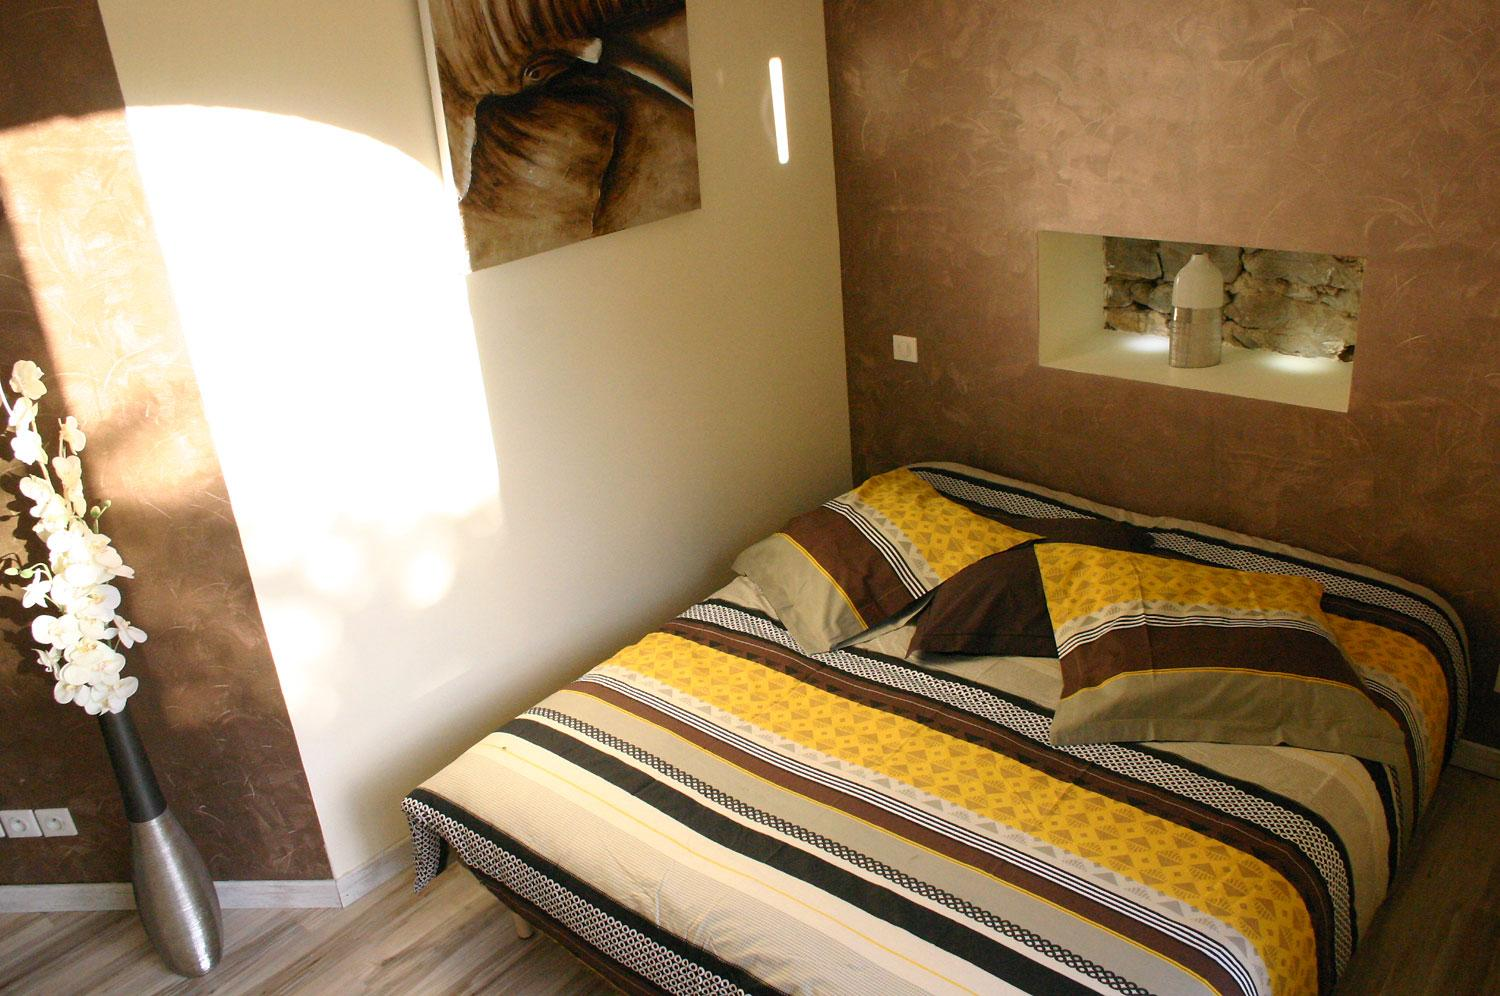 Suite guest room design, original and warm with its niche stones and matching Duvet cover set Causses and Cevennes